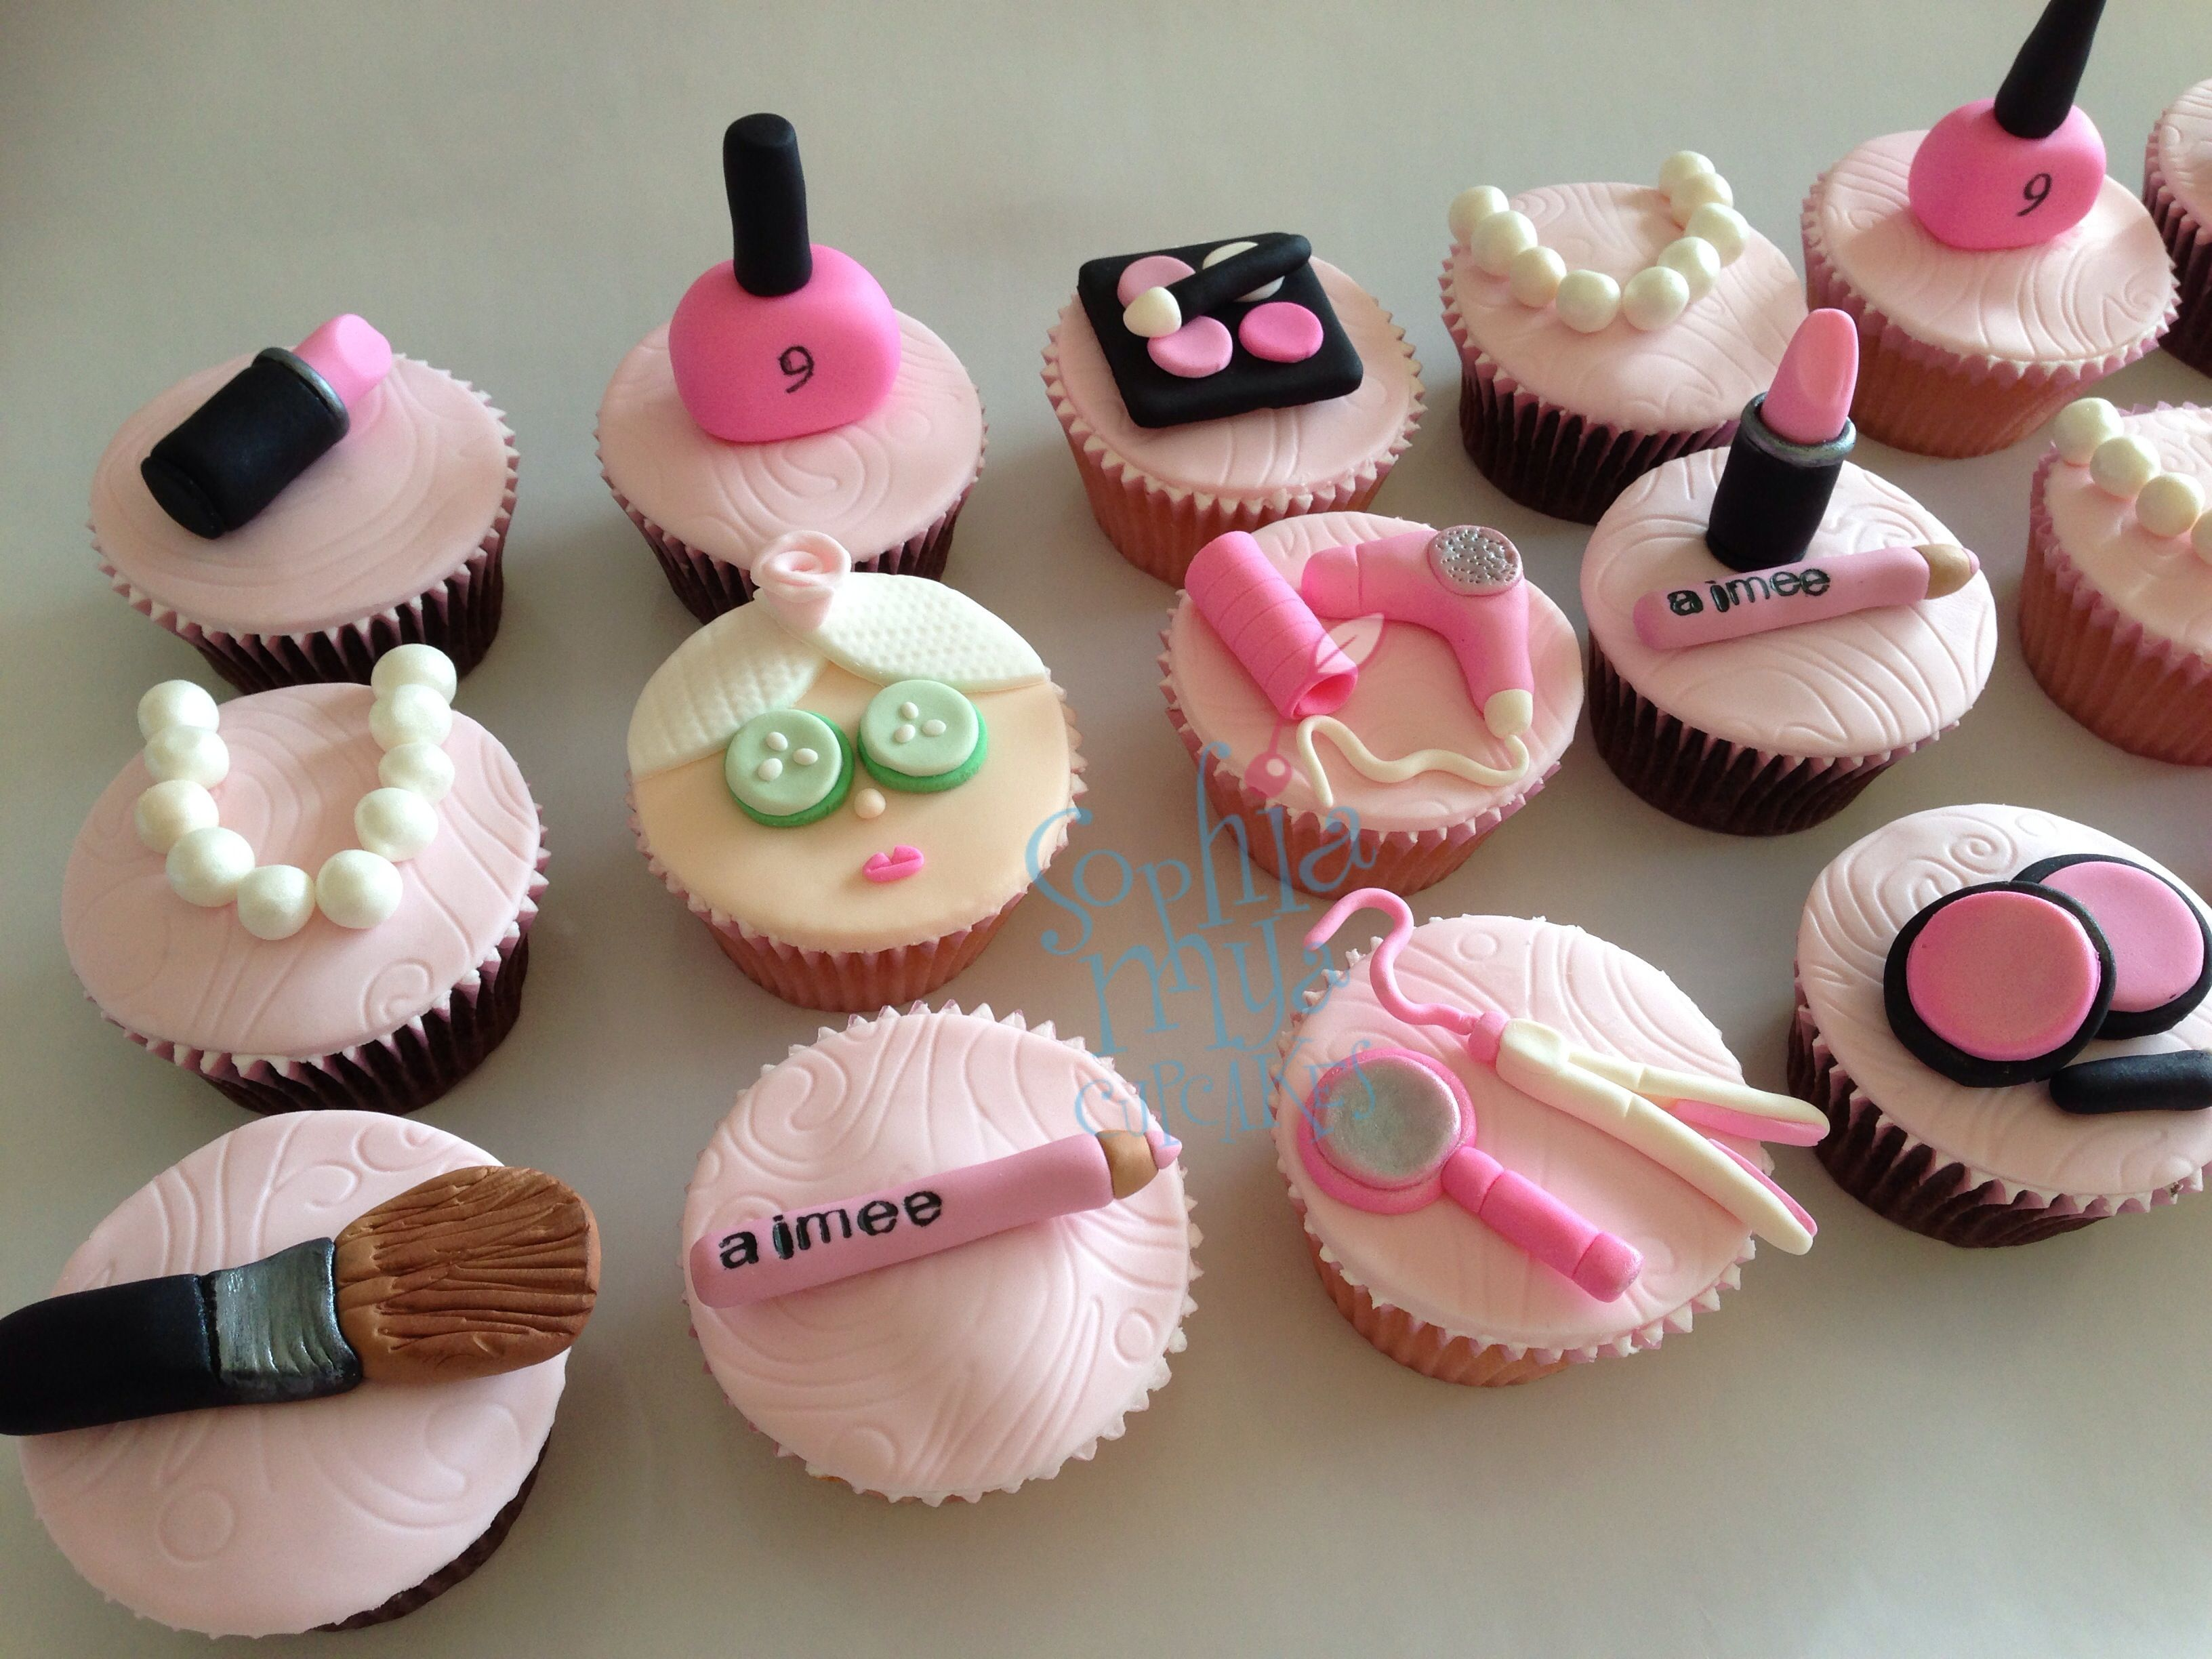 Pamper Party Cupcakes wwwsophiamyacupcakescomau Recipes